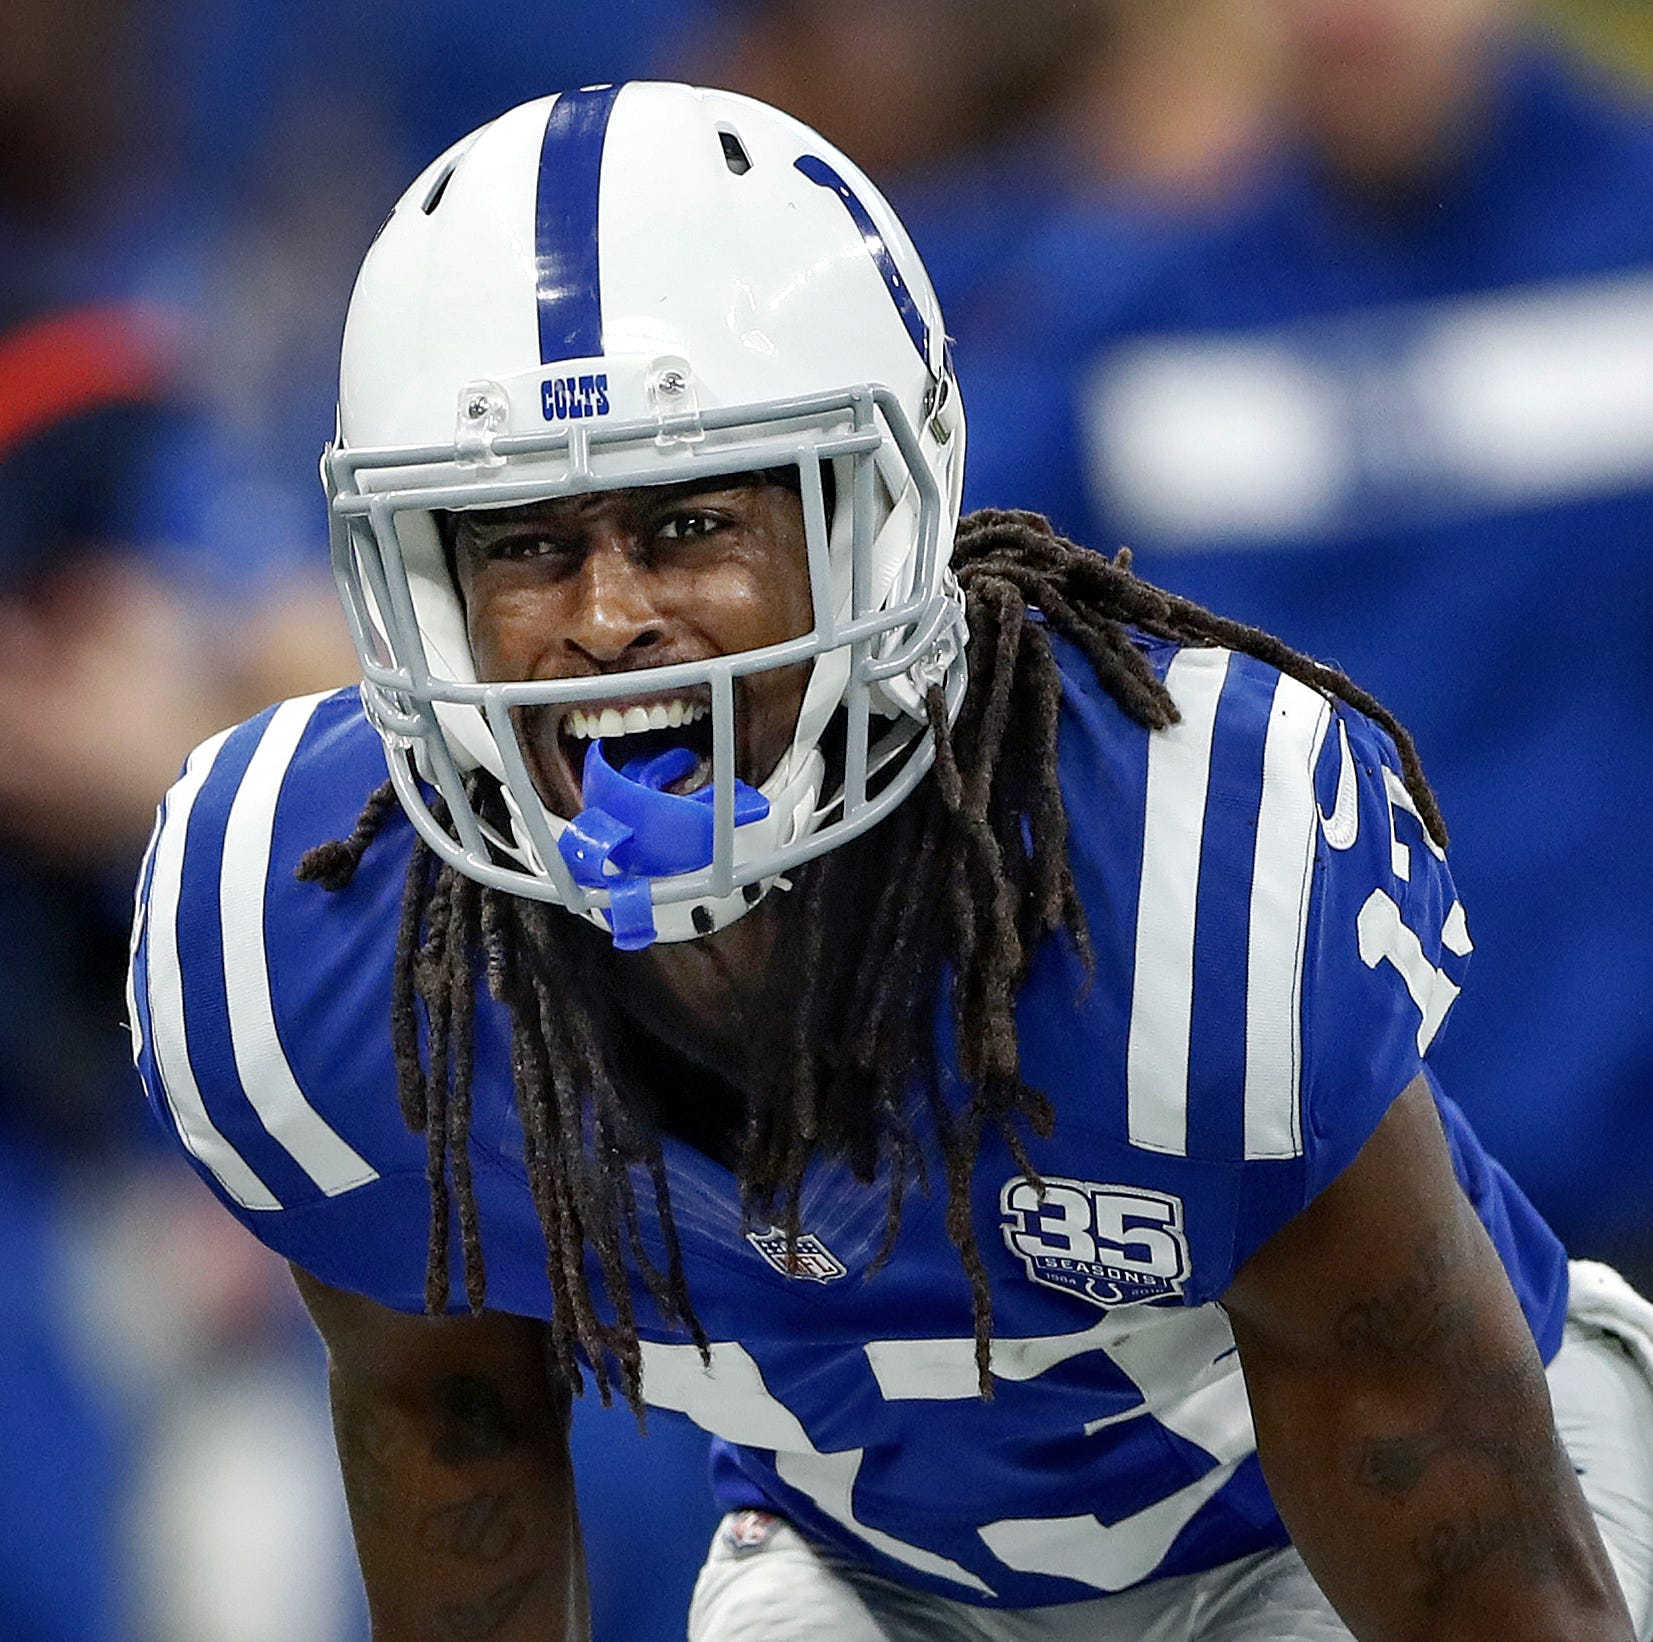 Reggie Wayne, Frank Reich: Colts need another 'dog' at WR to pair with T.Y. Hilton